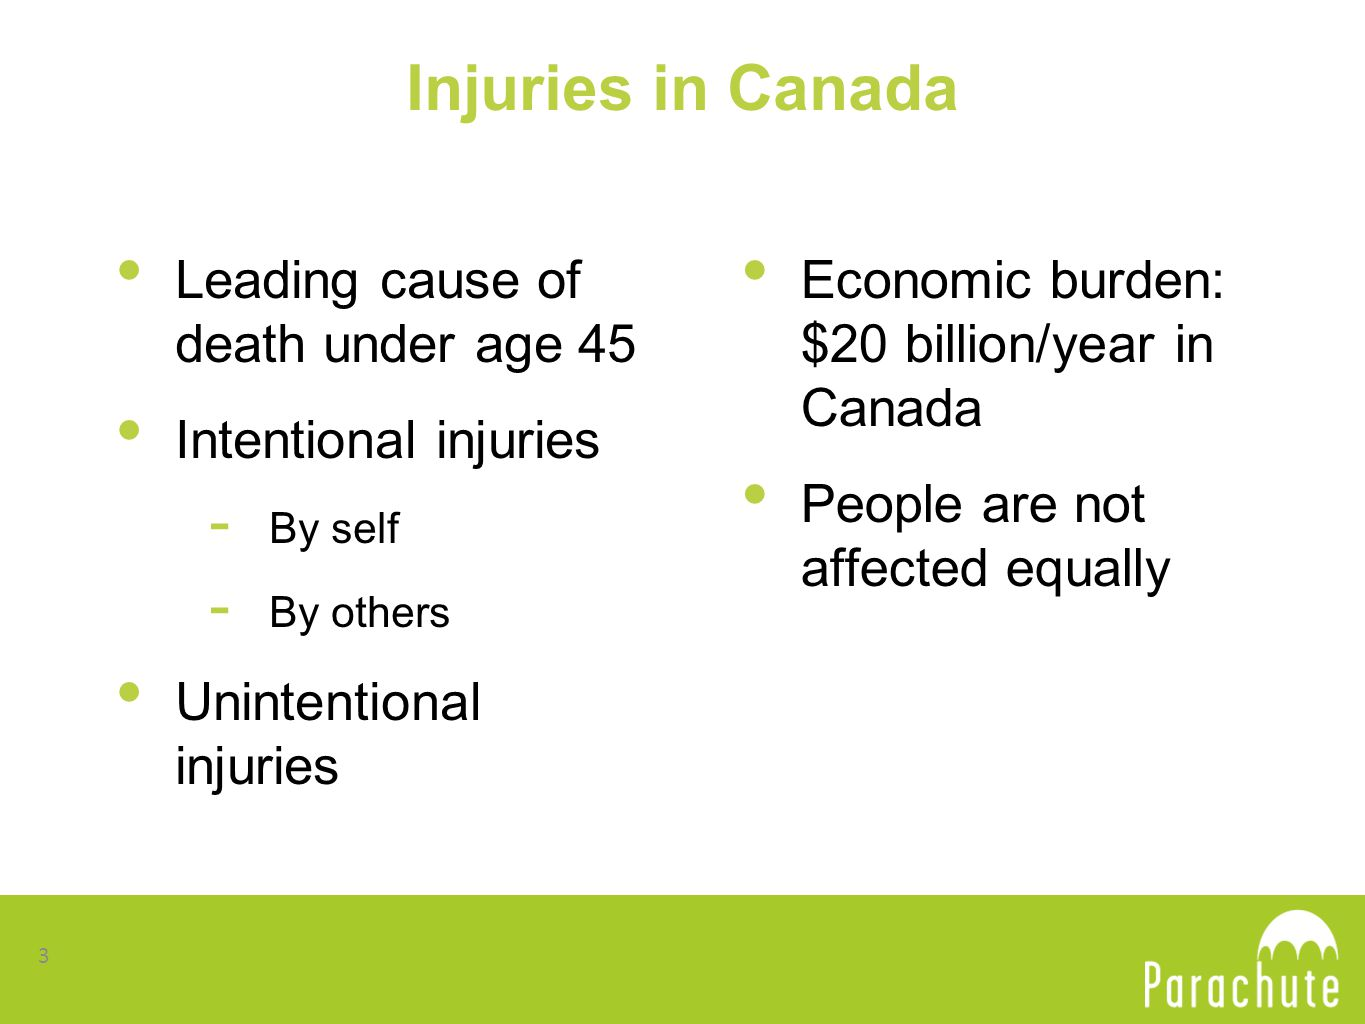 Injuries in Canada Leading cause of death under age 45 Intentional injuries - By self - By others Unintentional injuries Economic burden: $20 billion/year in Canada People are not affected equally 3